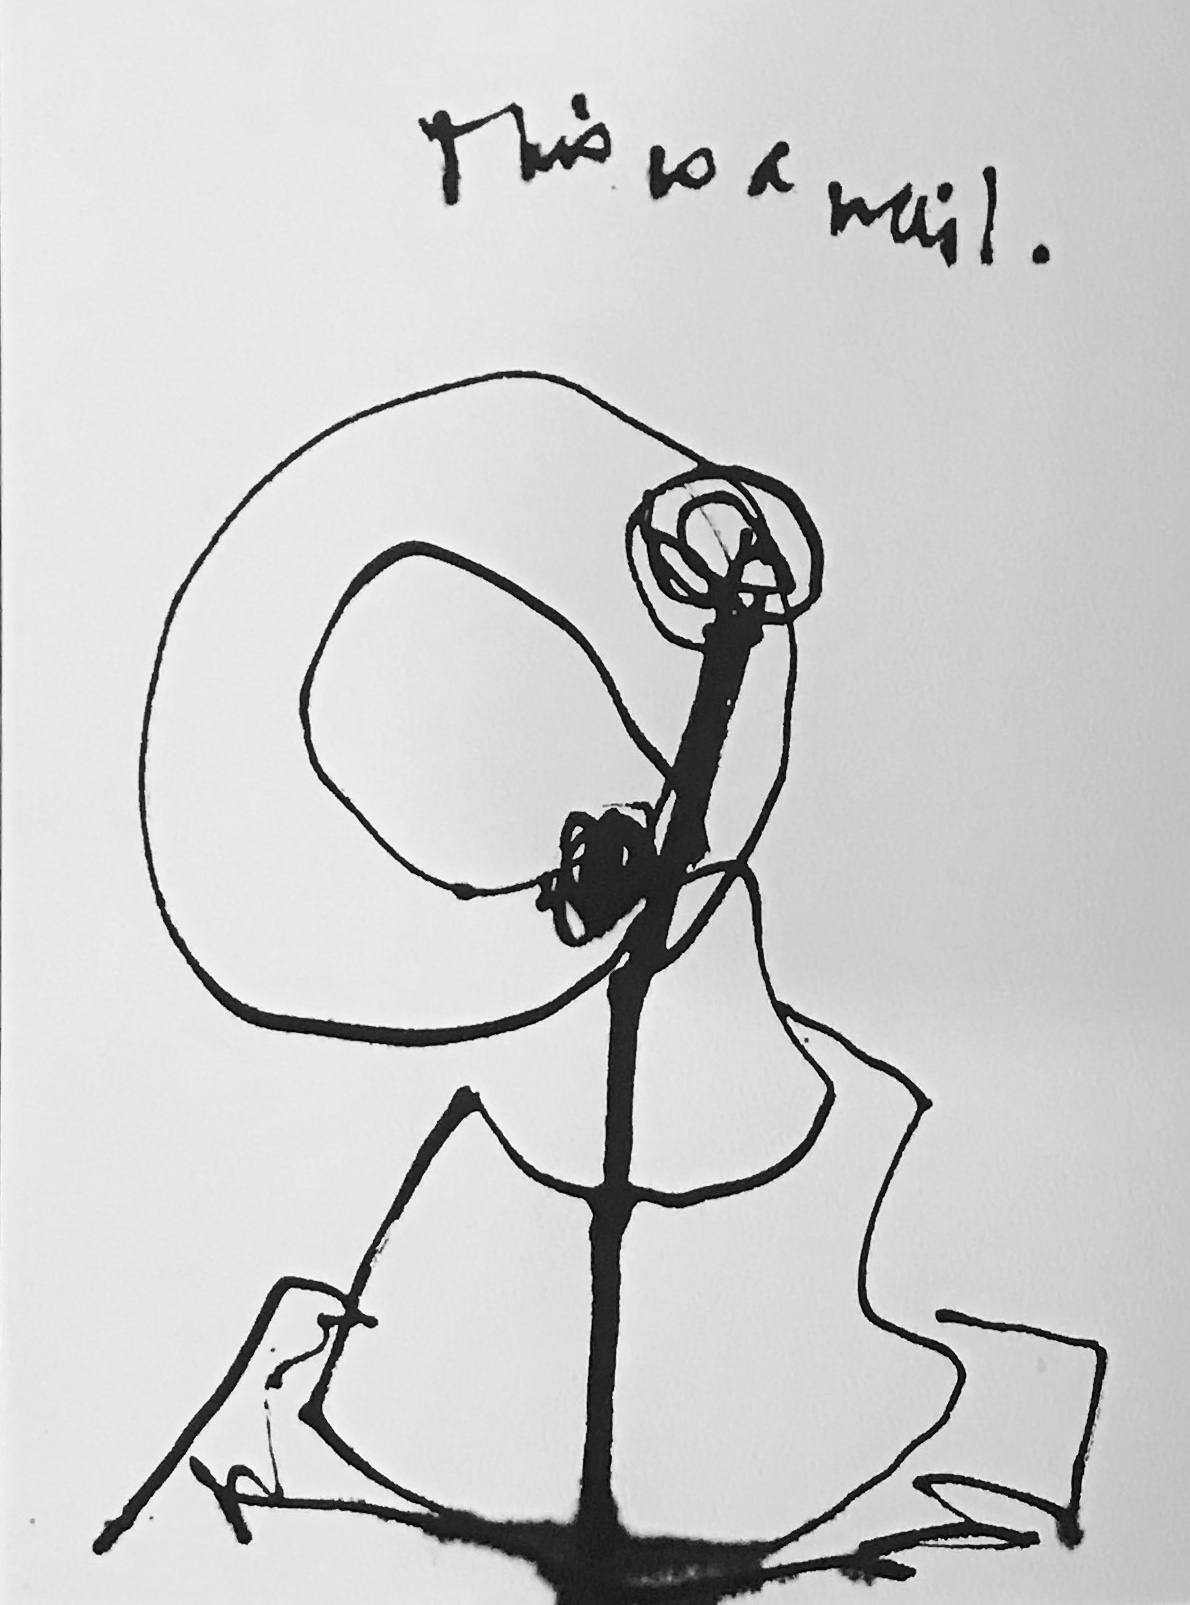 It's a Nail, Ink on paper drawing.